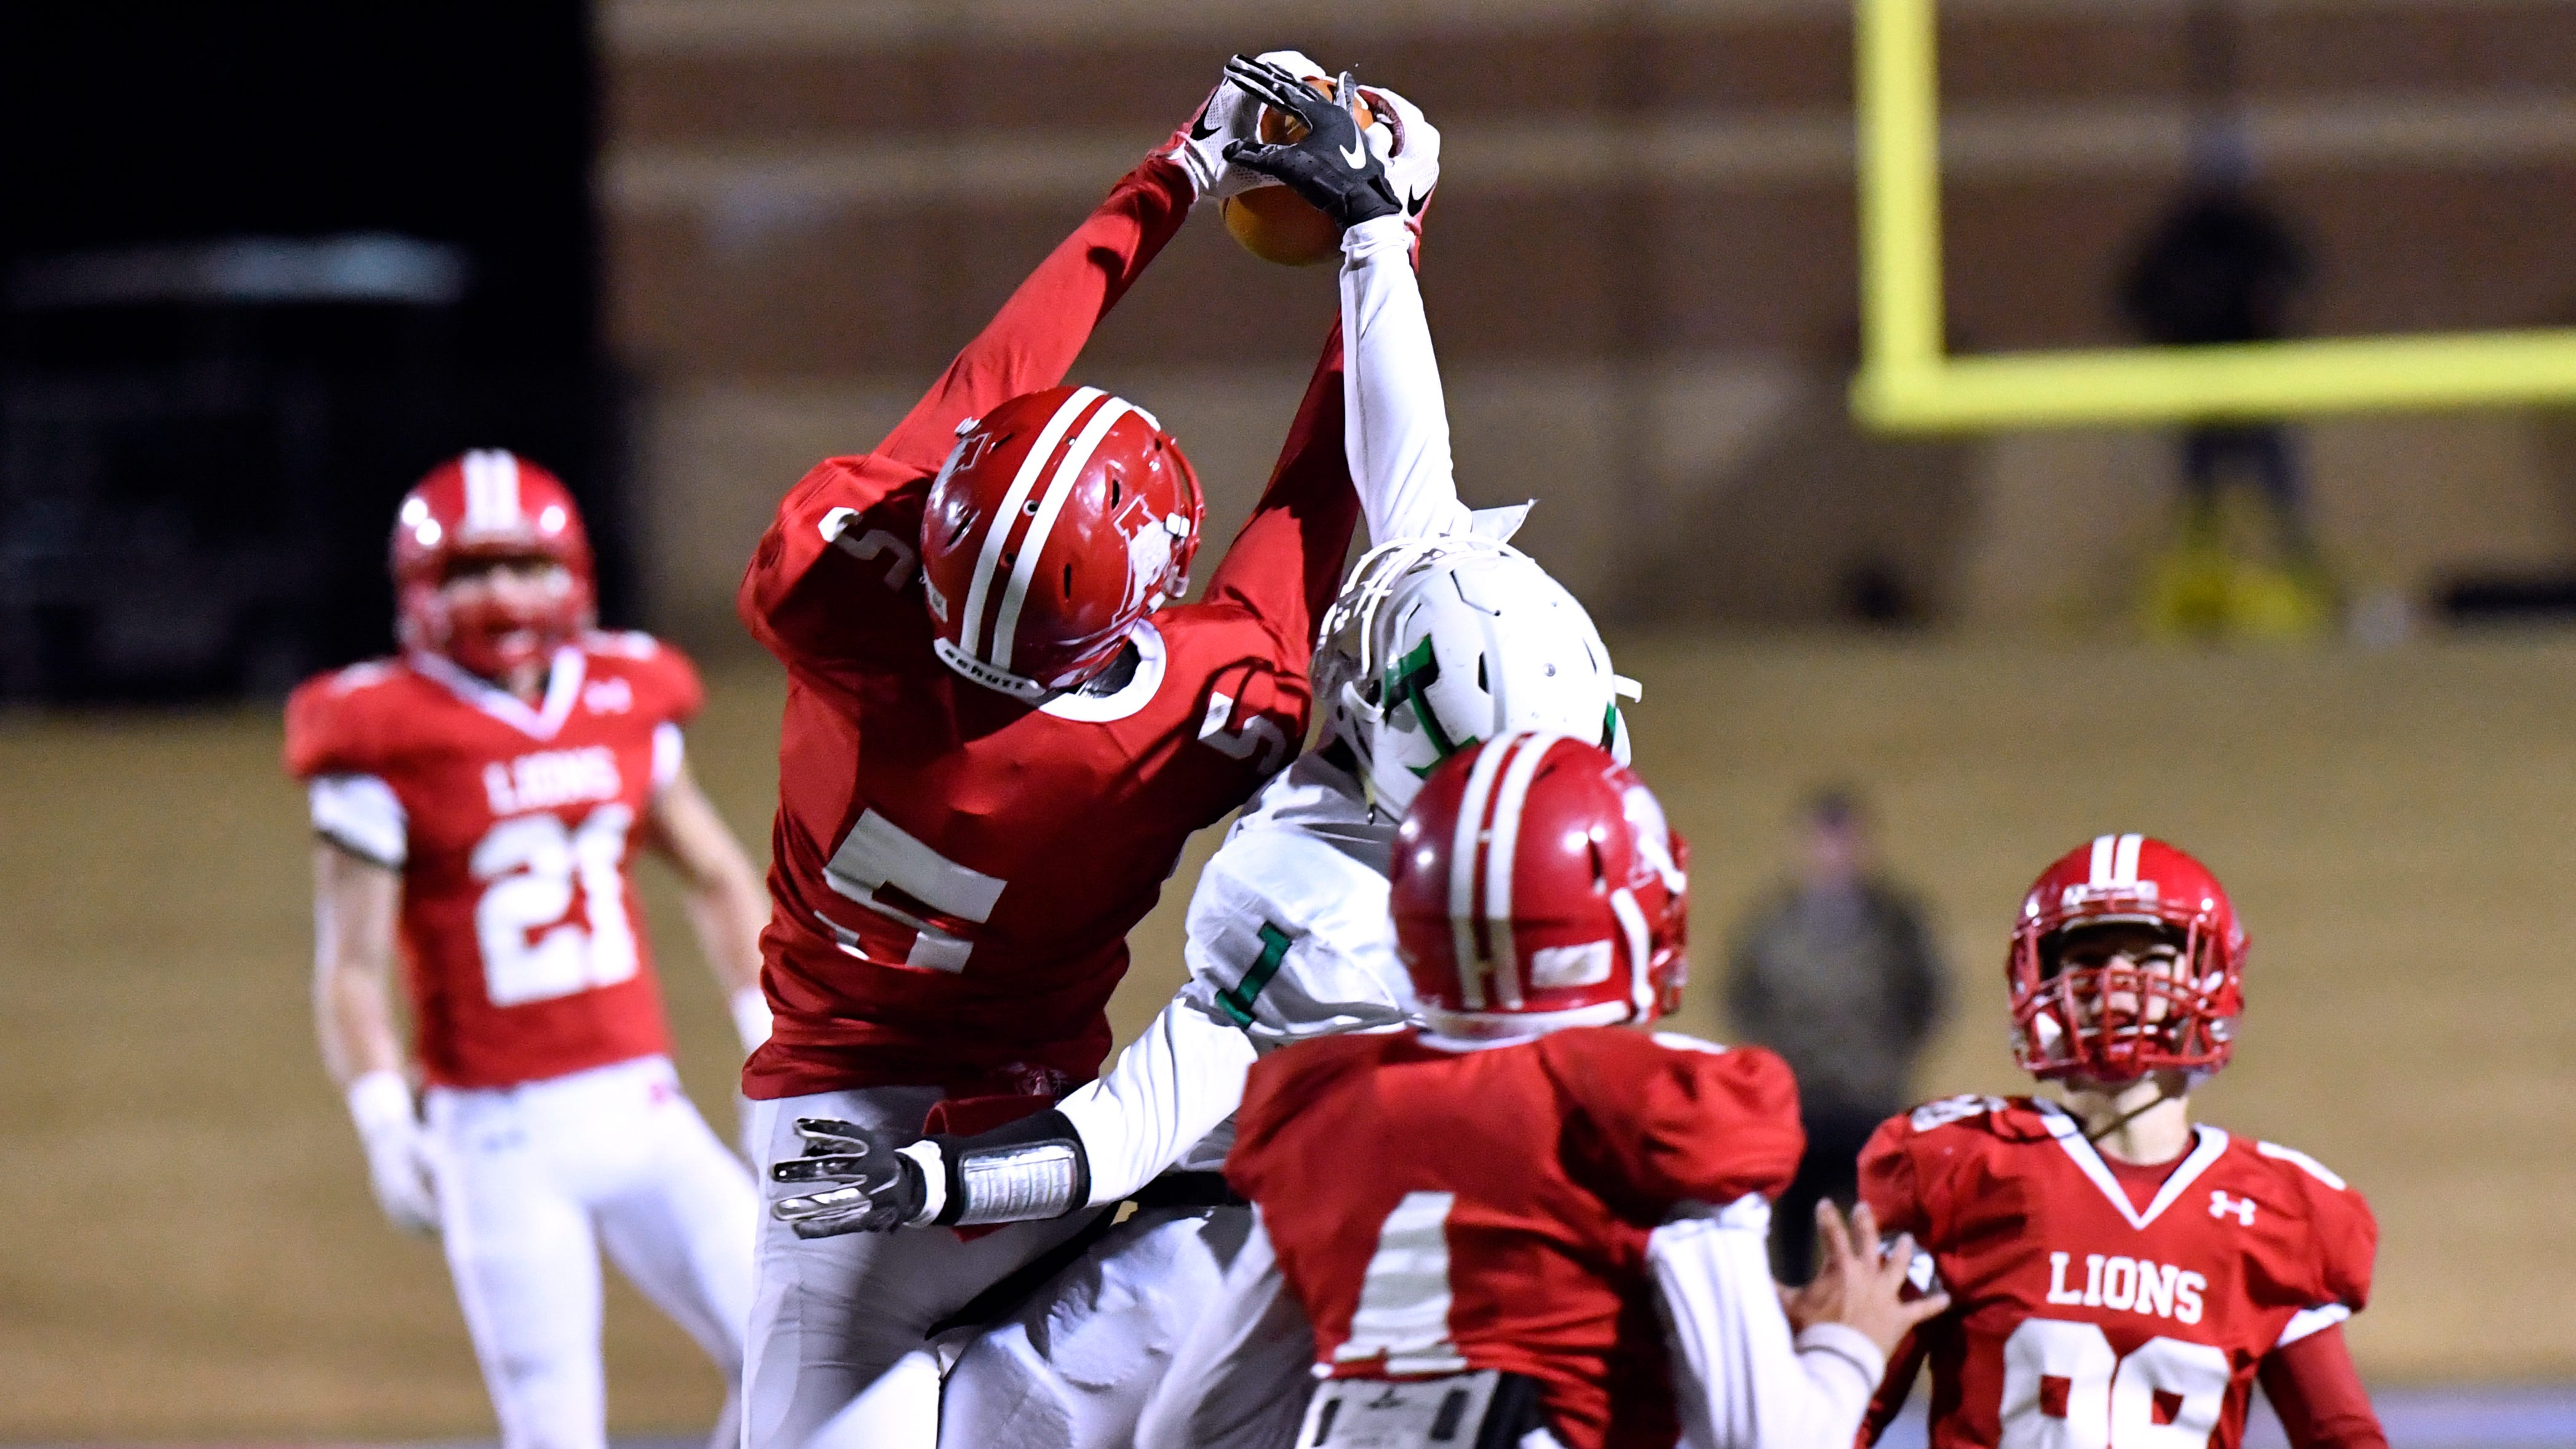 Albany safety Cameron Dacus intercepts a pass meant for Hamlin wide receiver Jevon Williams during the first quarter of Thursday's Class 2A Division II quarterfinal game at Shotwell Stadium Dec. 6, 2018. Final score was 41-28, Albany.